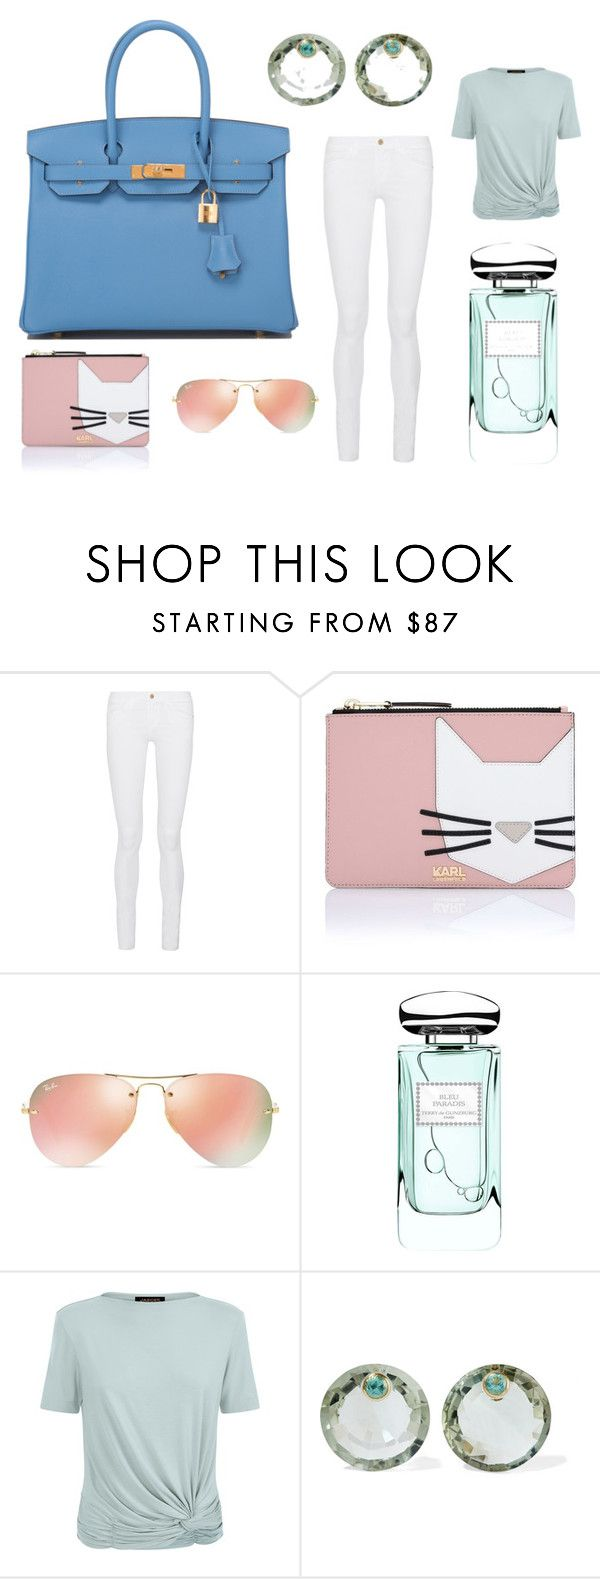 """Blue Paradise"" by madavecouture on Polyvore featuring Hermès, Frame Denim, Karl Lagerfeld, Ray-Ban, By Terry, Jaeger and Marie Hélène de Taillac"